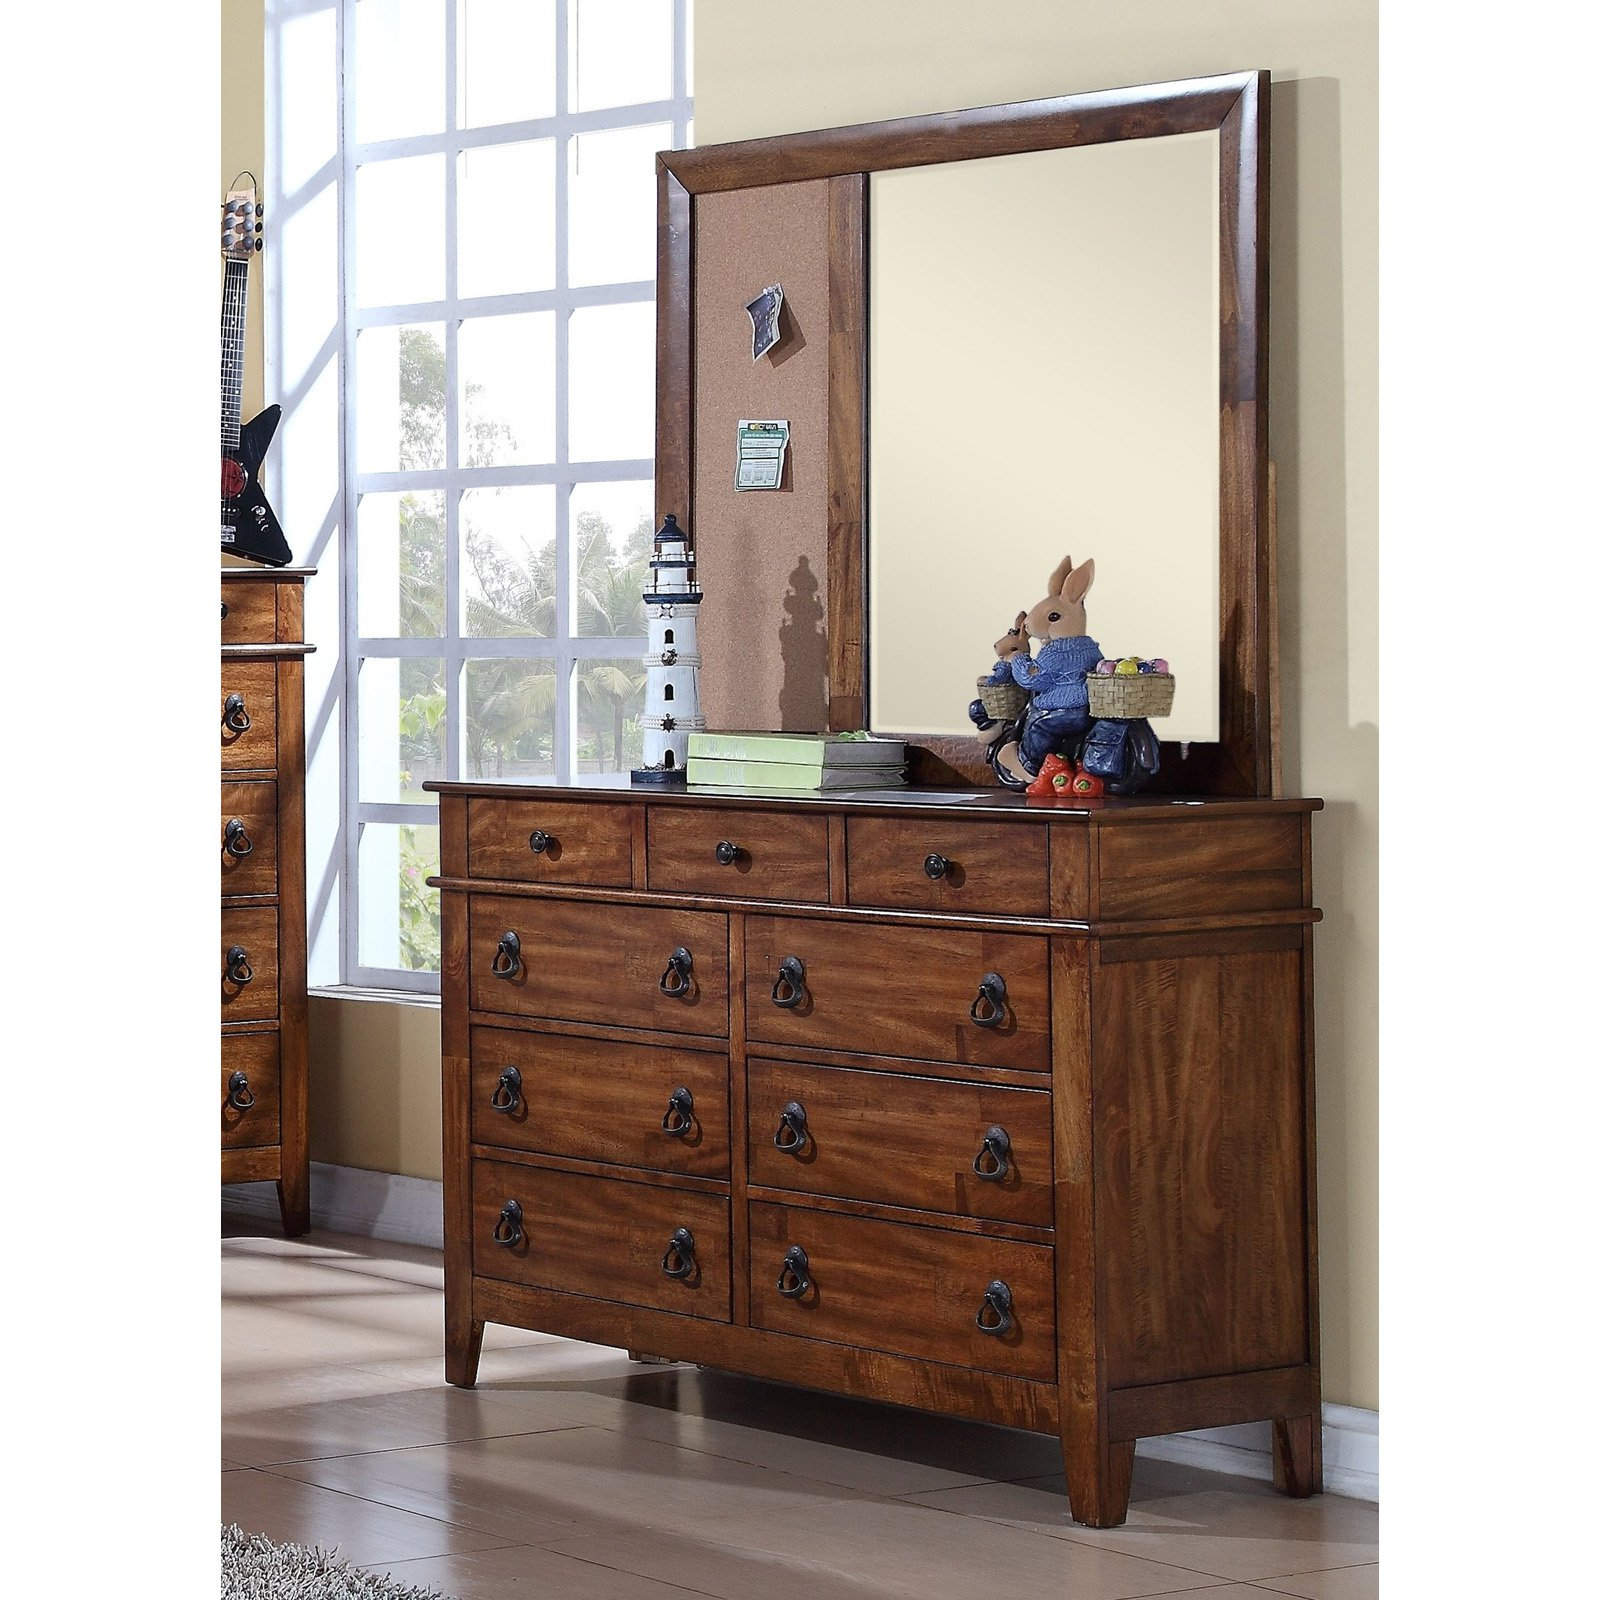 Picket House Furnishings Tucson Youth 9 Drawer Dresser - Light Brown Lacquer